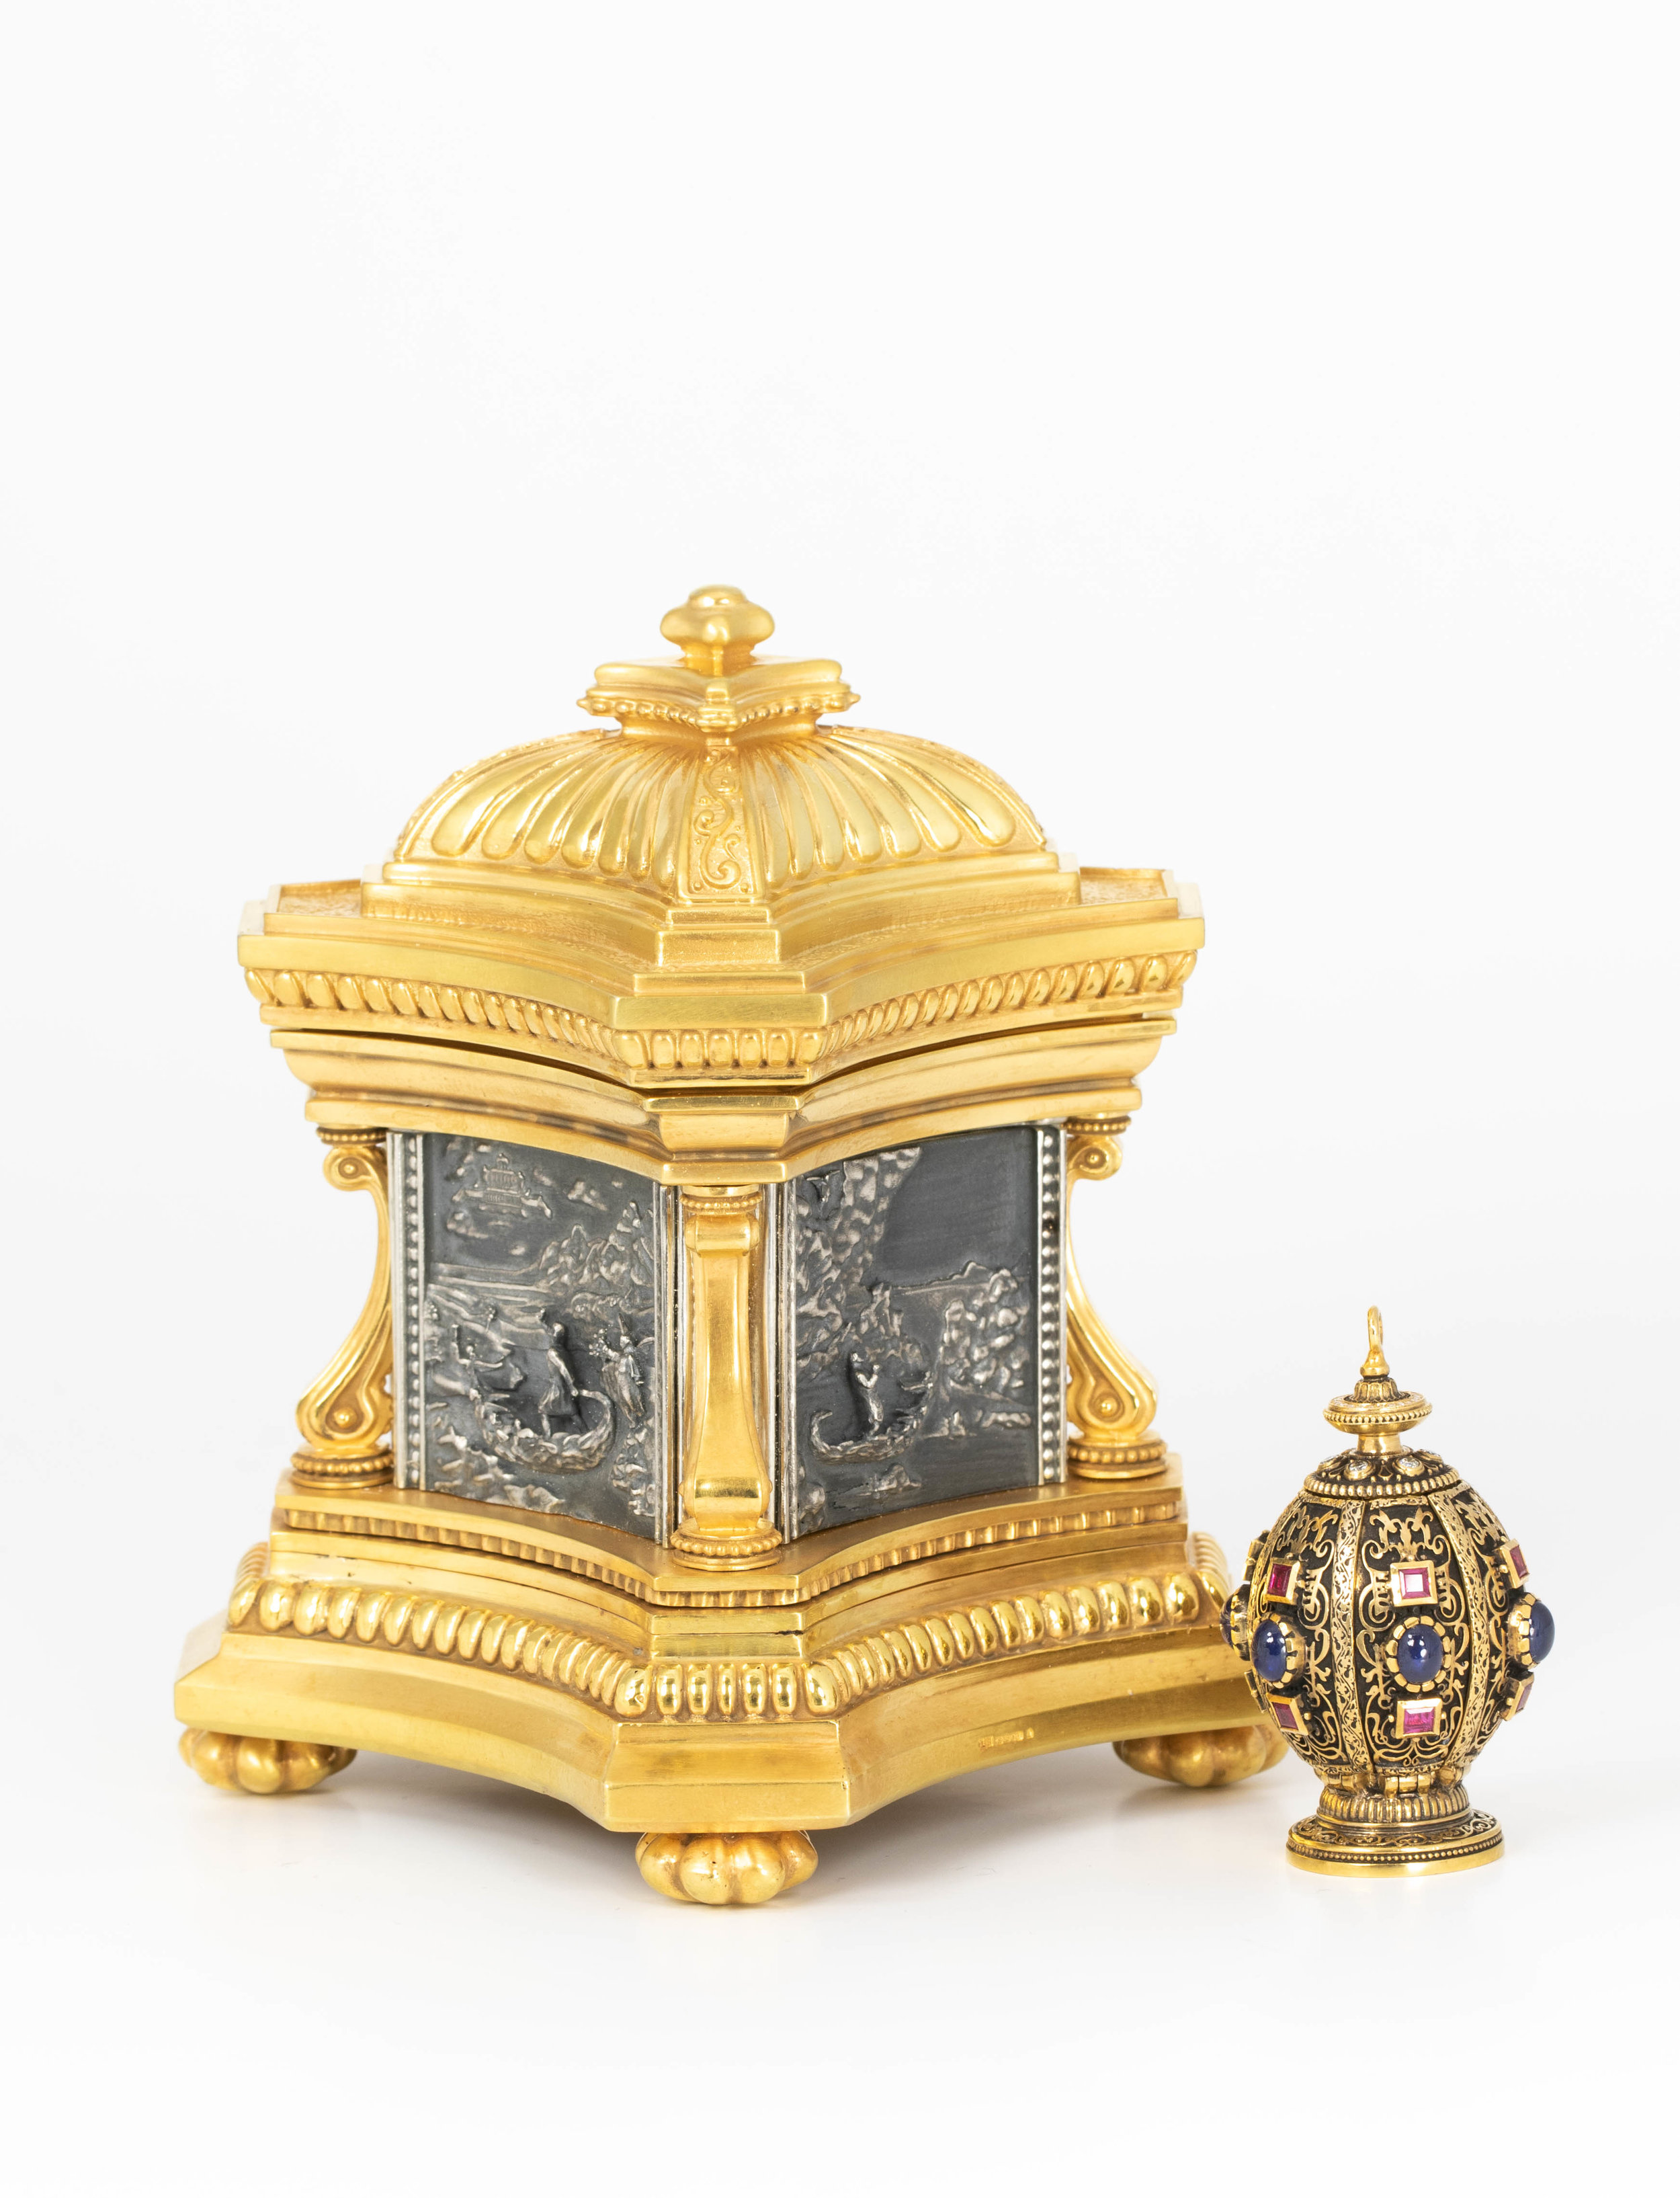 The Voyage of Life casket and the Pomander. A special commission for the Chichester Charity,  Dementia Support . The gold, sapphire, ruby and diamond set pomander sits in a cushioned compartment within the casket. Made in Chichester, England.